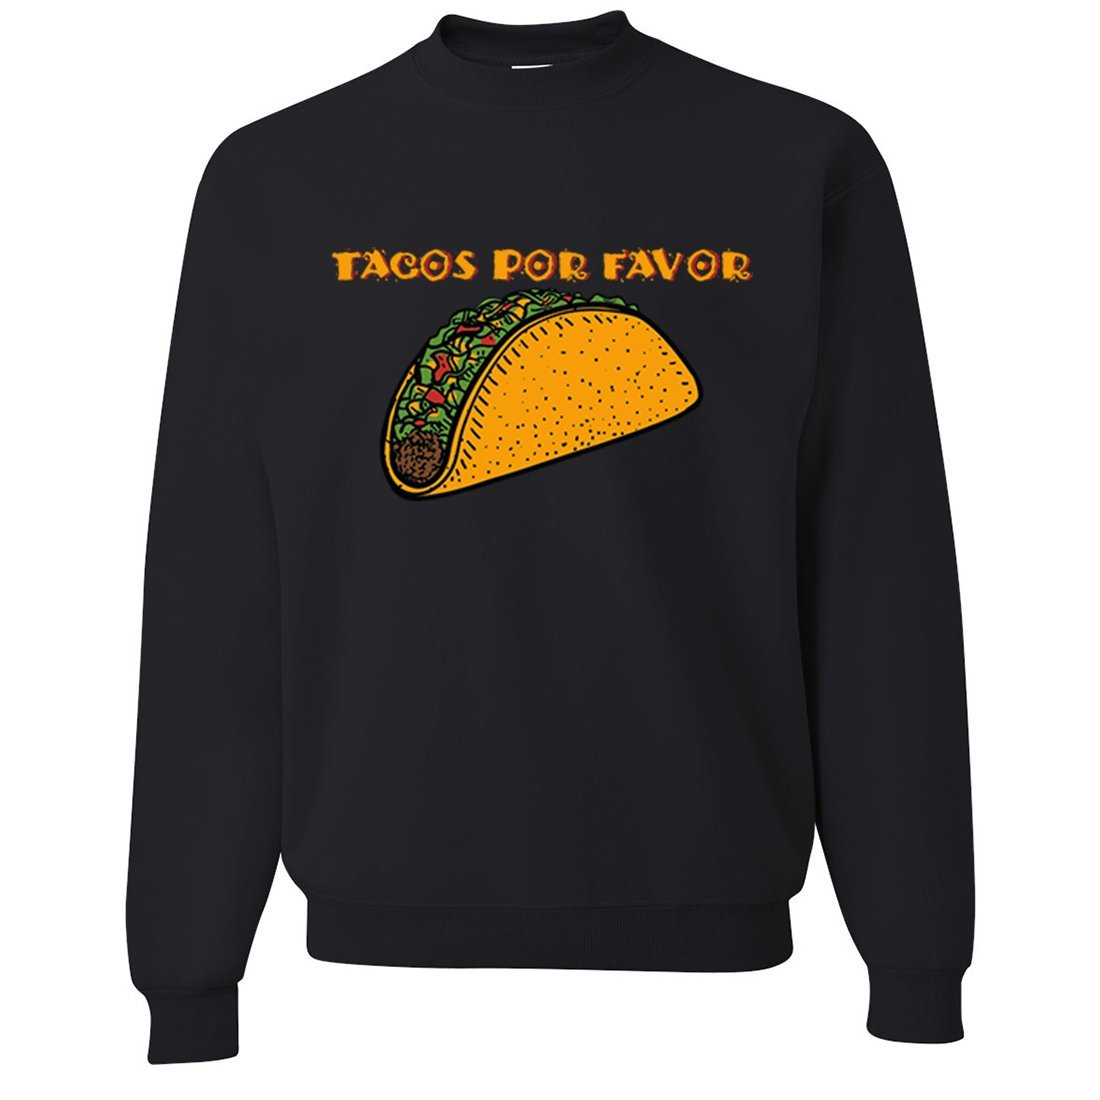 Black Medium Dolphin Shirt Co Tacos Por Favor Crewneck Sweatshirt